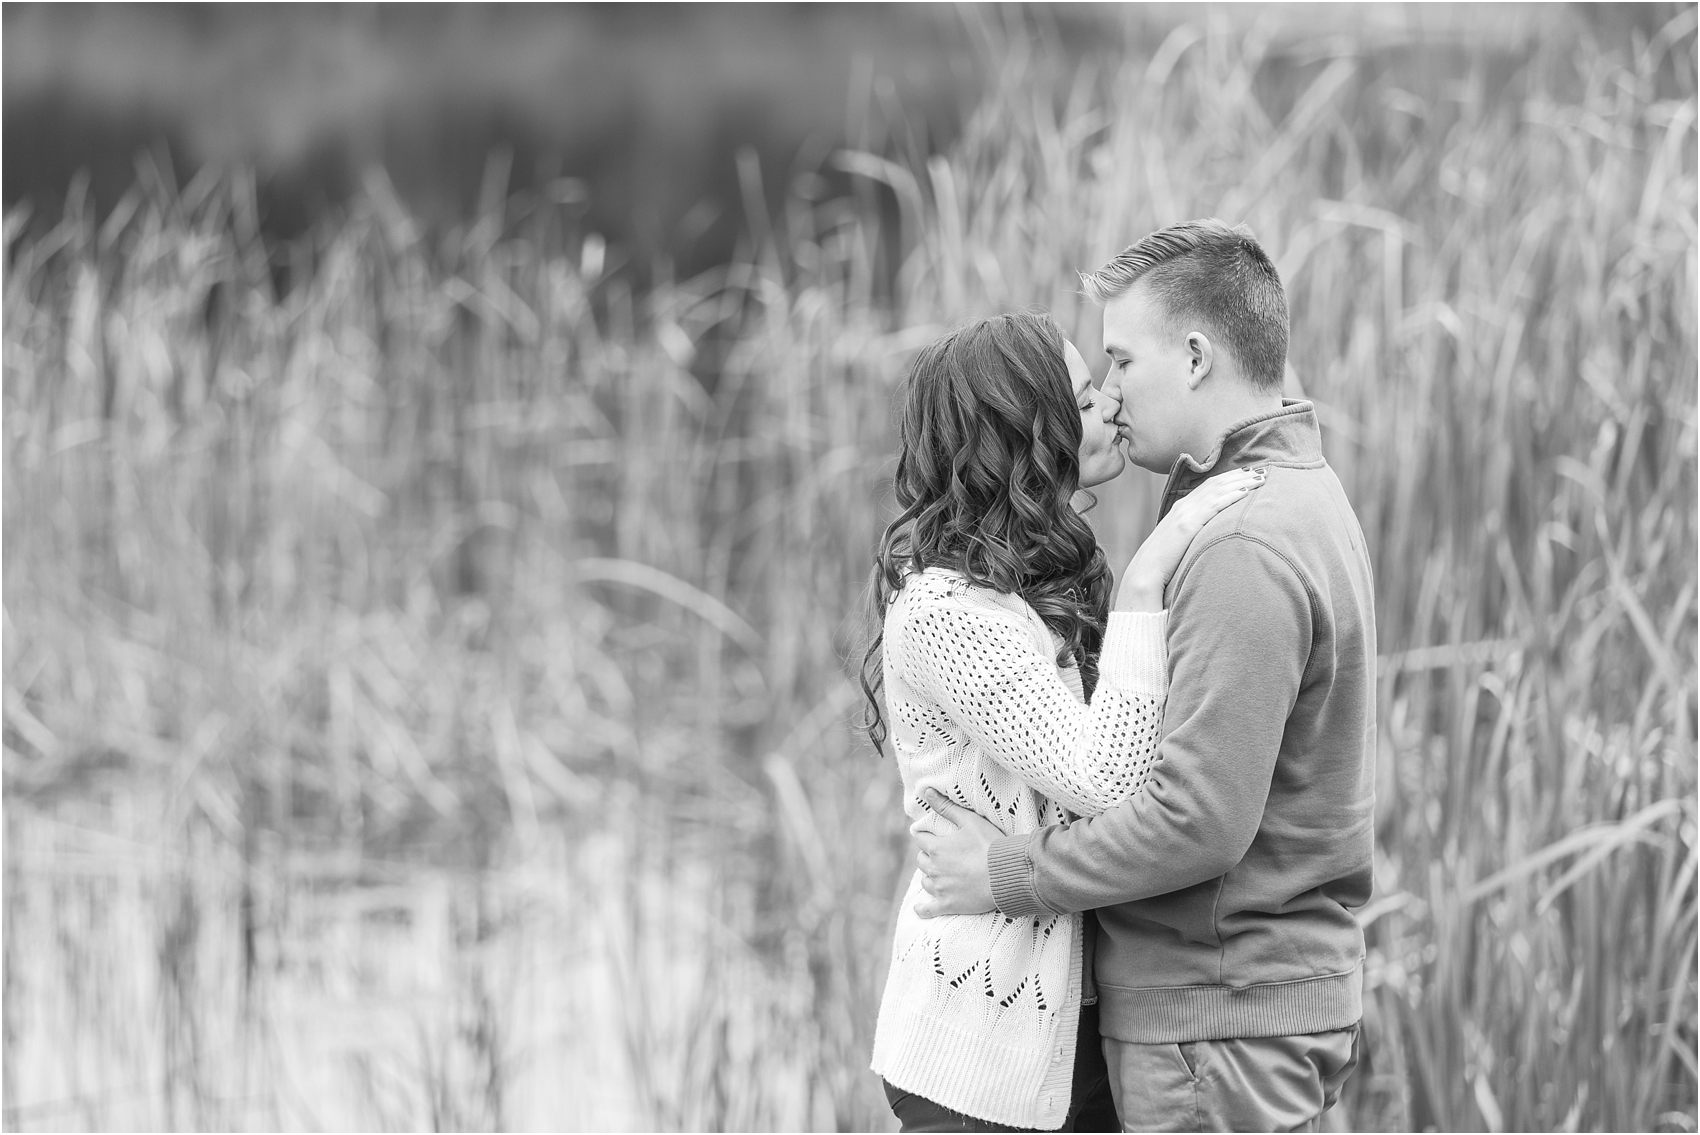 colorful-fall-engagement-photos-at-the-lake-at-huron-meadows-metropark-in-brighton-michigan-by-courtney-carolyn-photography_0013.jpg